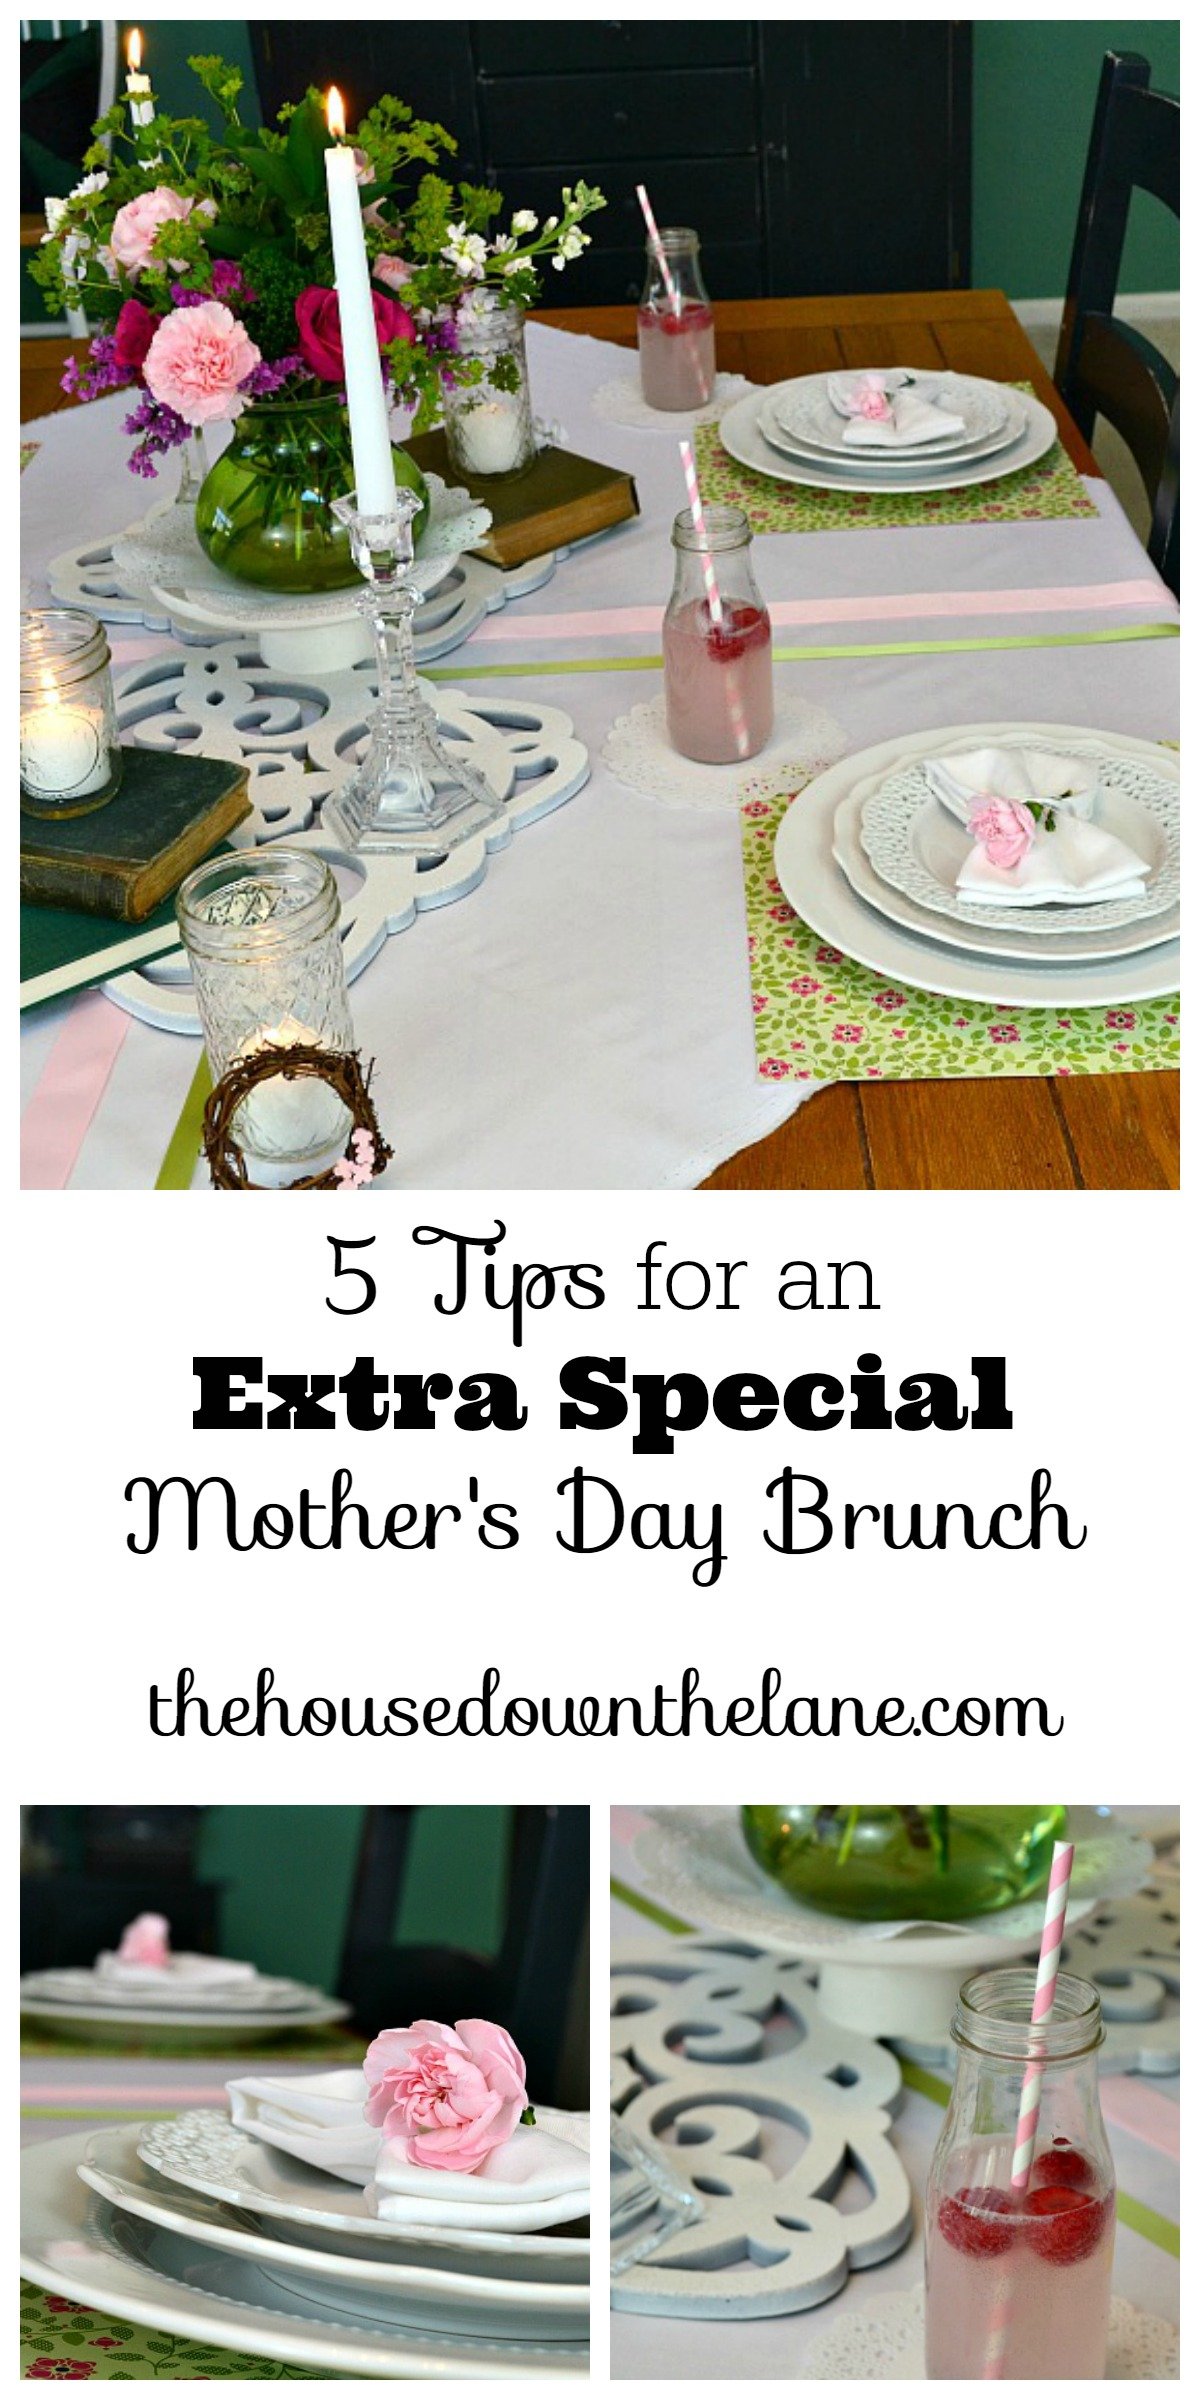 5 Tips for an Extra Special Mother's Day Brunch!   The House Down the Lane